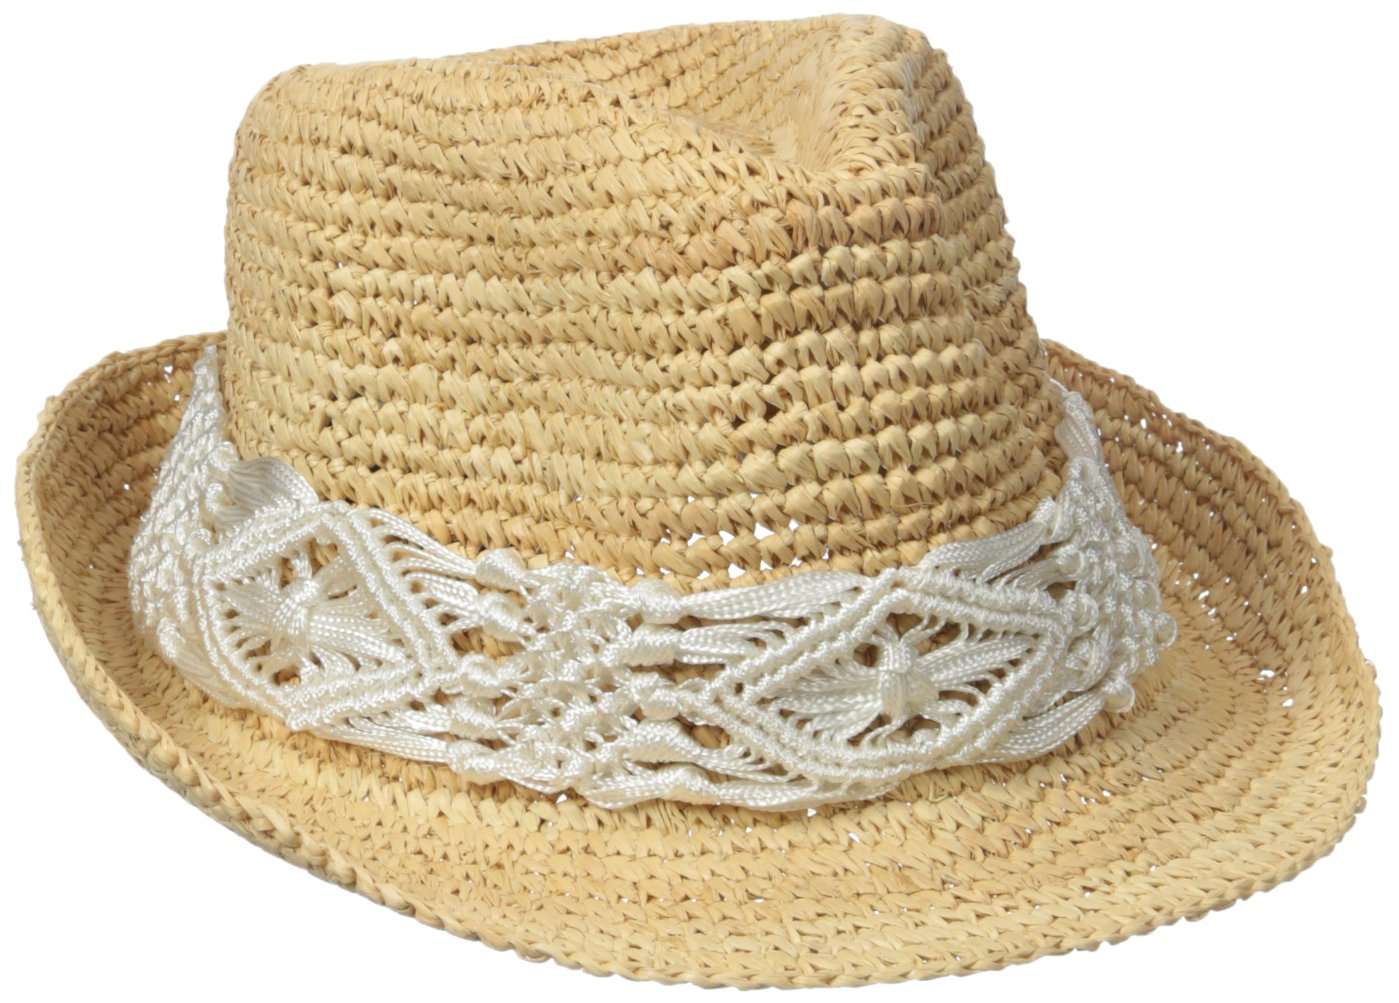 Physician Endorsed Women's Malia Crochet Raffia Sun Hat with Macrame Trim, Rated UPF 30 for Sun Protection, White, Adjustable Head Size